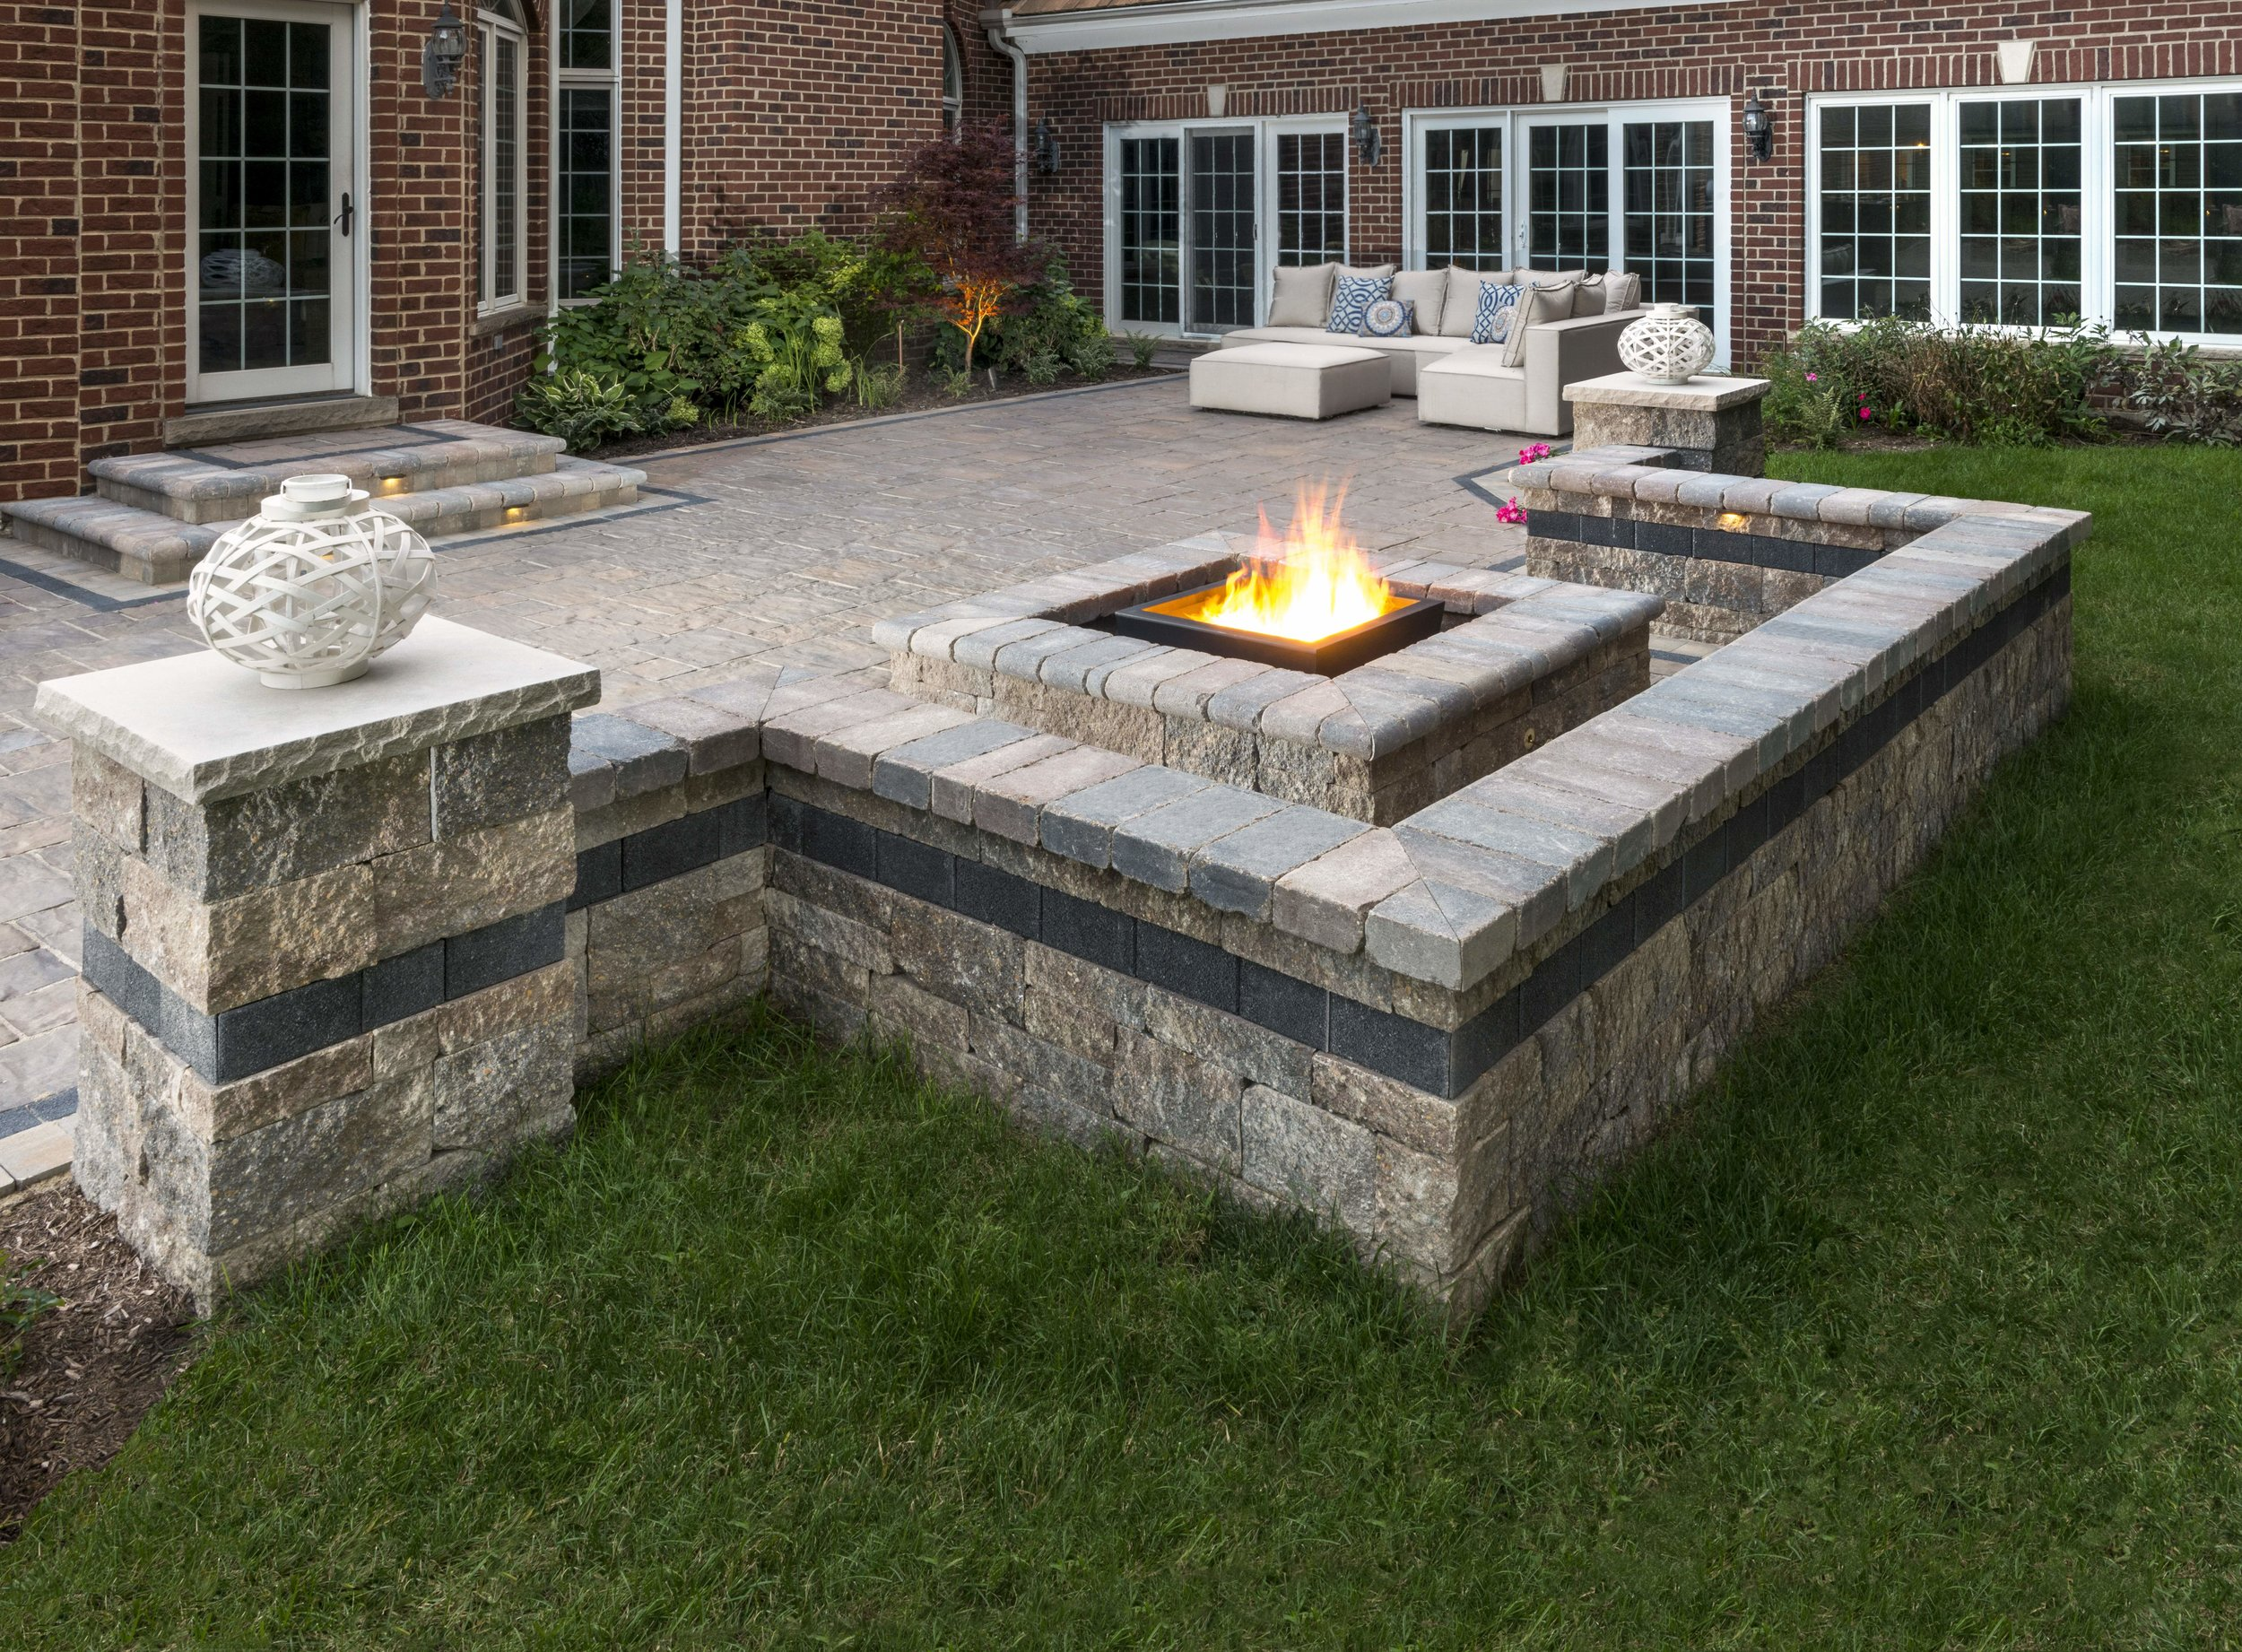 enclosing a patio with sitting walls in